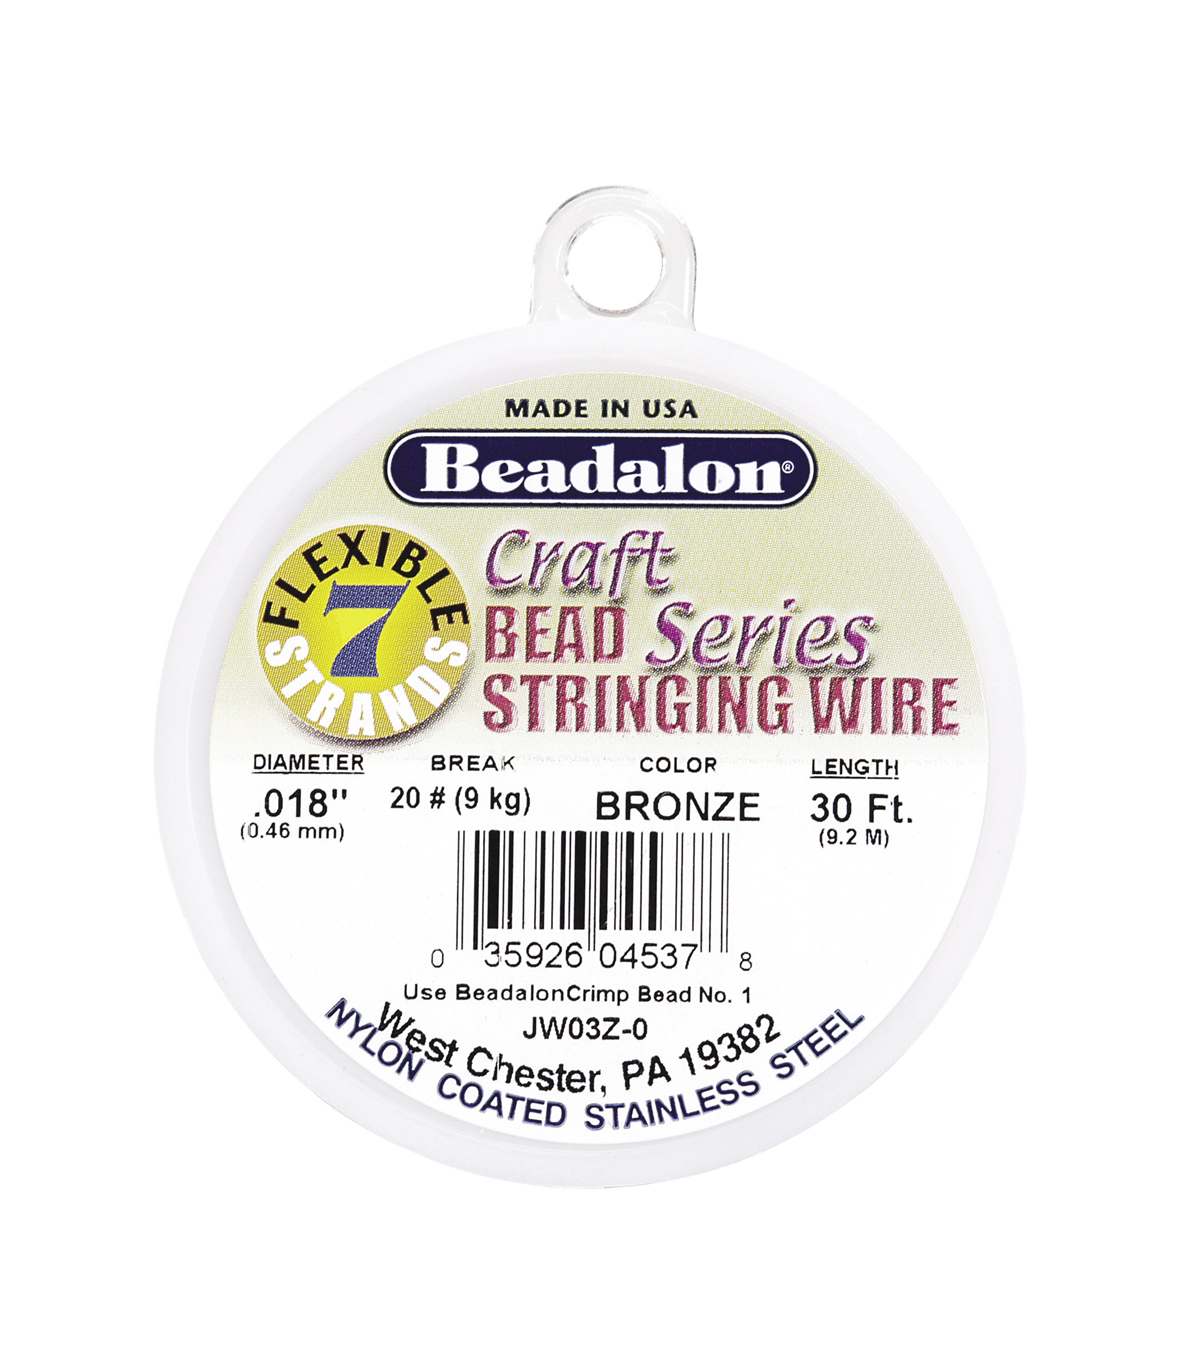 Beadalon 7-Strand Nylon Coated Stainless Steel Beading Wire, Bronze, 30 ft.